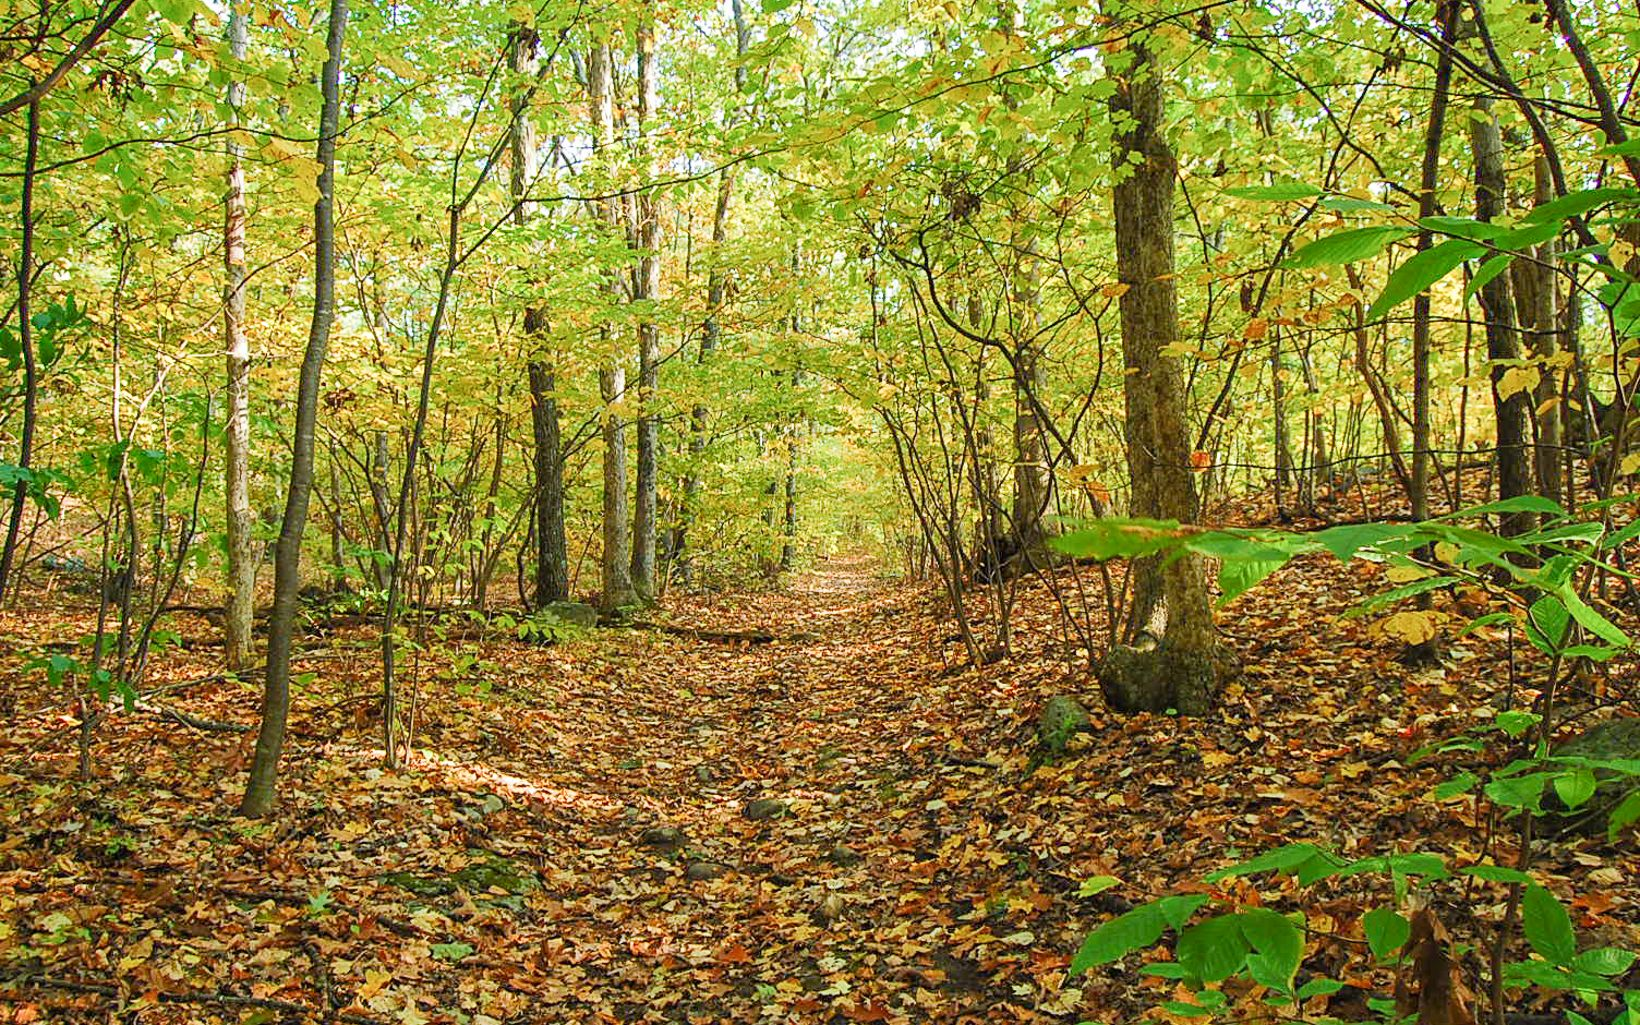 Branches of yellow and green leaves arching over a hiking trail.